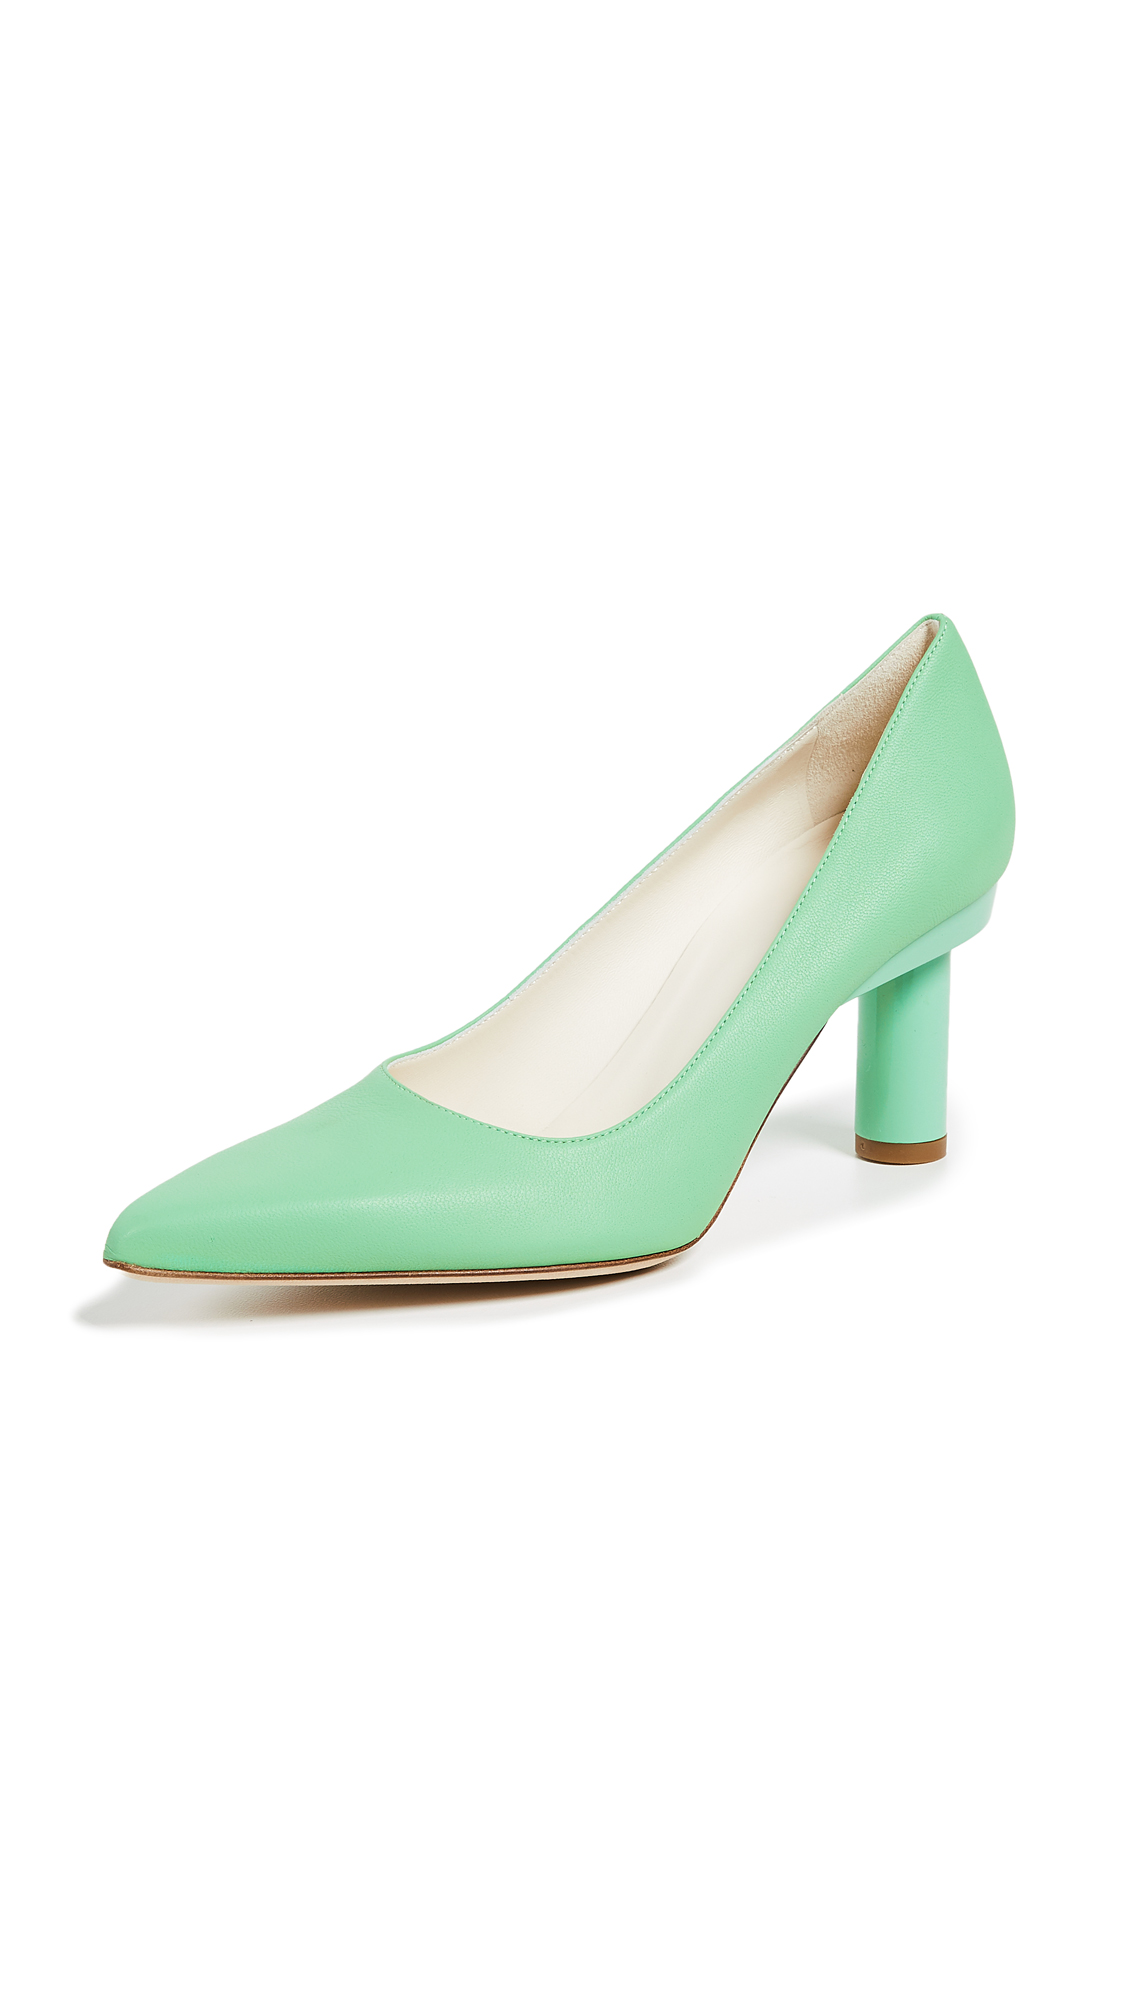 Tibi Zo Pumps - Mint Green